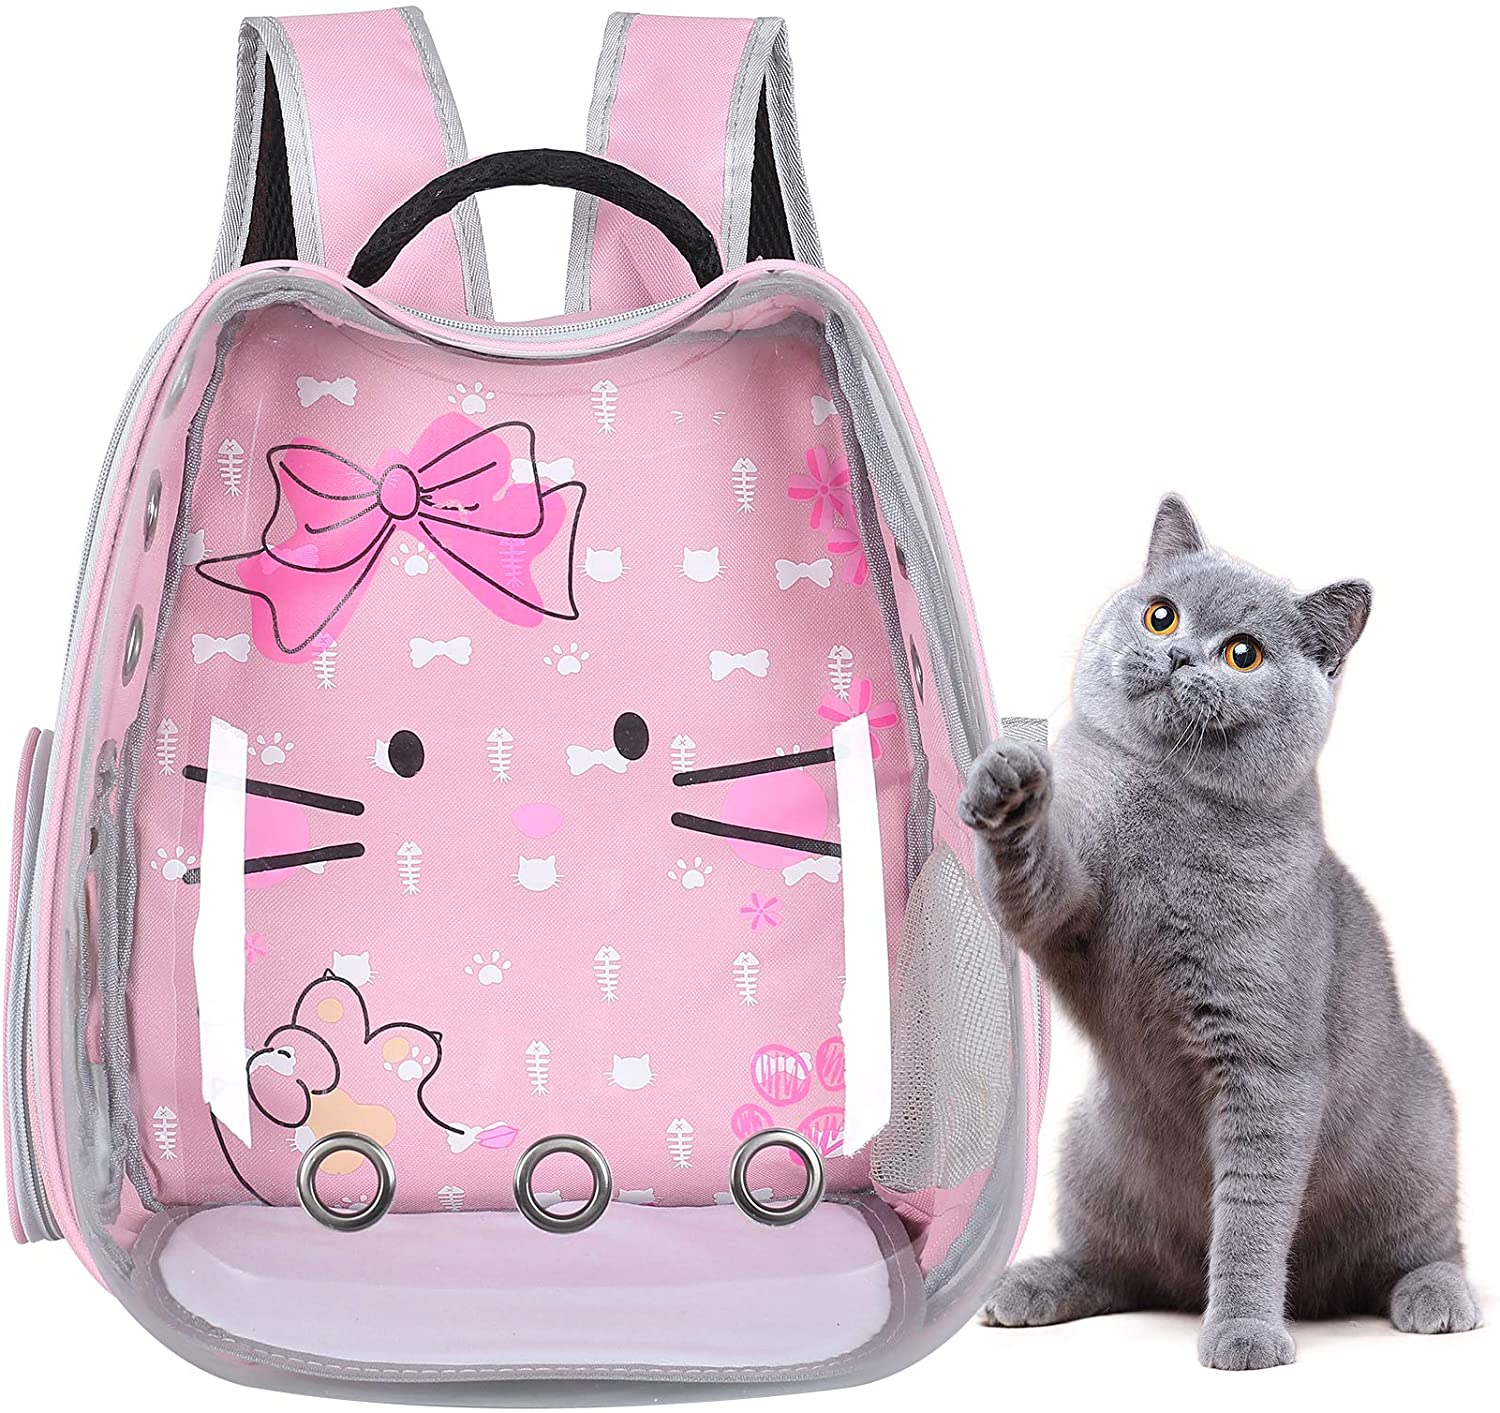 Grosee Cat Backpack Carrier, Cat Shaped Transparent Bubble Pet Carrier for Small Dog, Portable Travelling Backpack Airline-Approved for Hiking and Outdoor Use